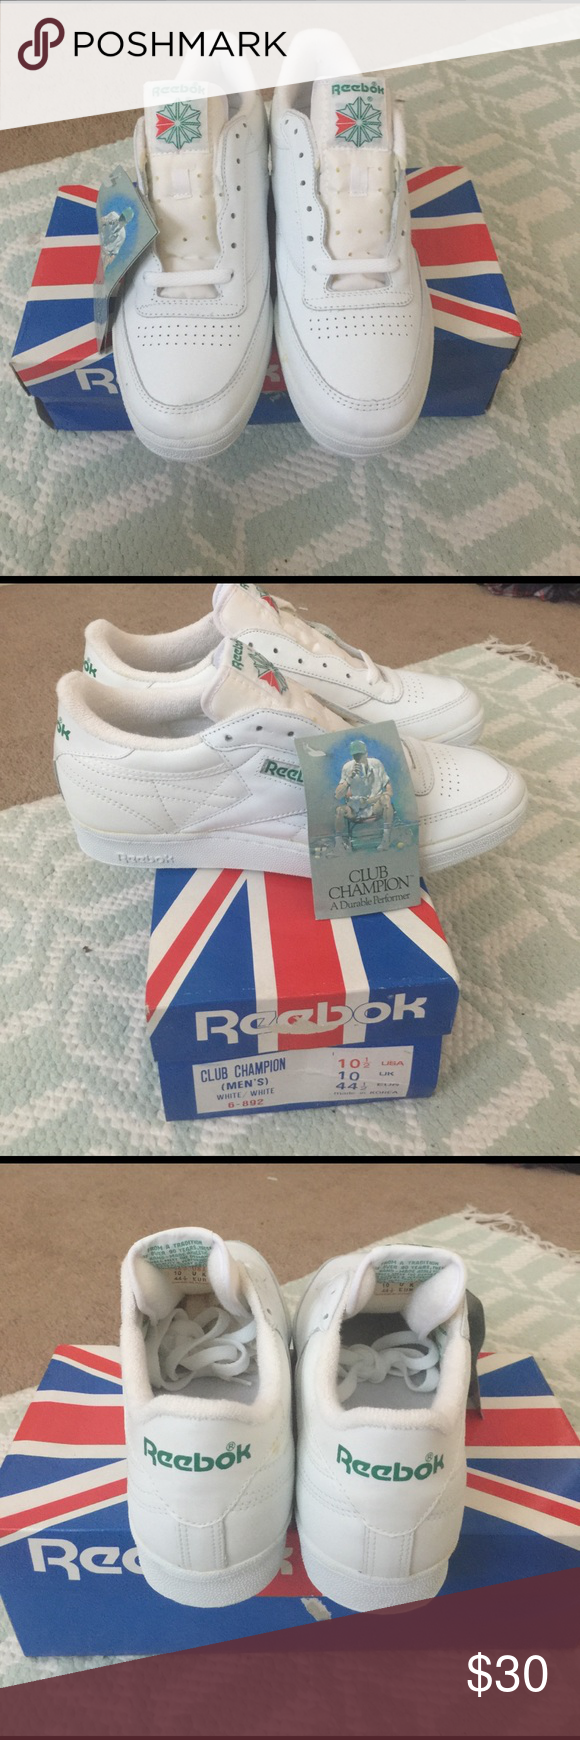 Vintage Reebok Club Champion Shoes Brand New Vintage Reebok Club Champions  Shoes White White Reebok Shoes Sneakers 1af9089f4a64